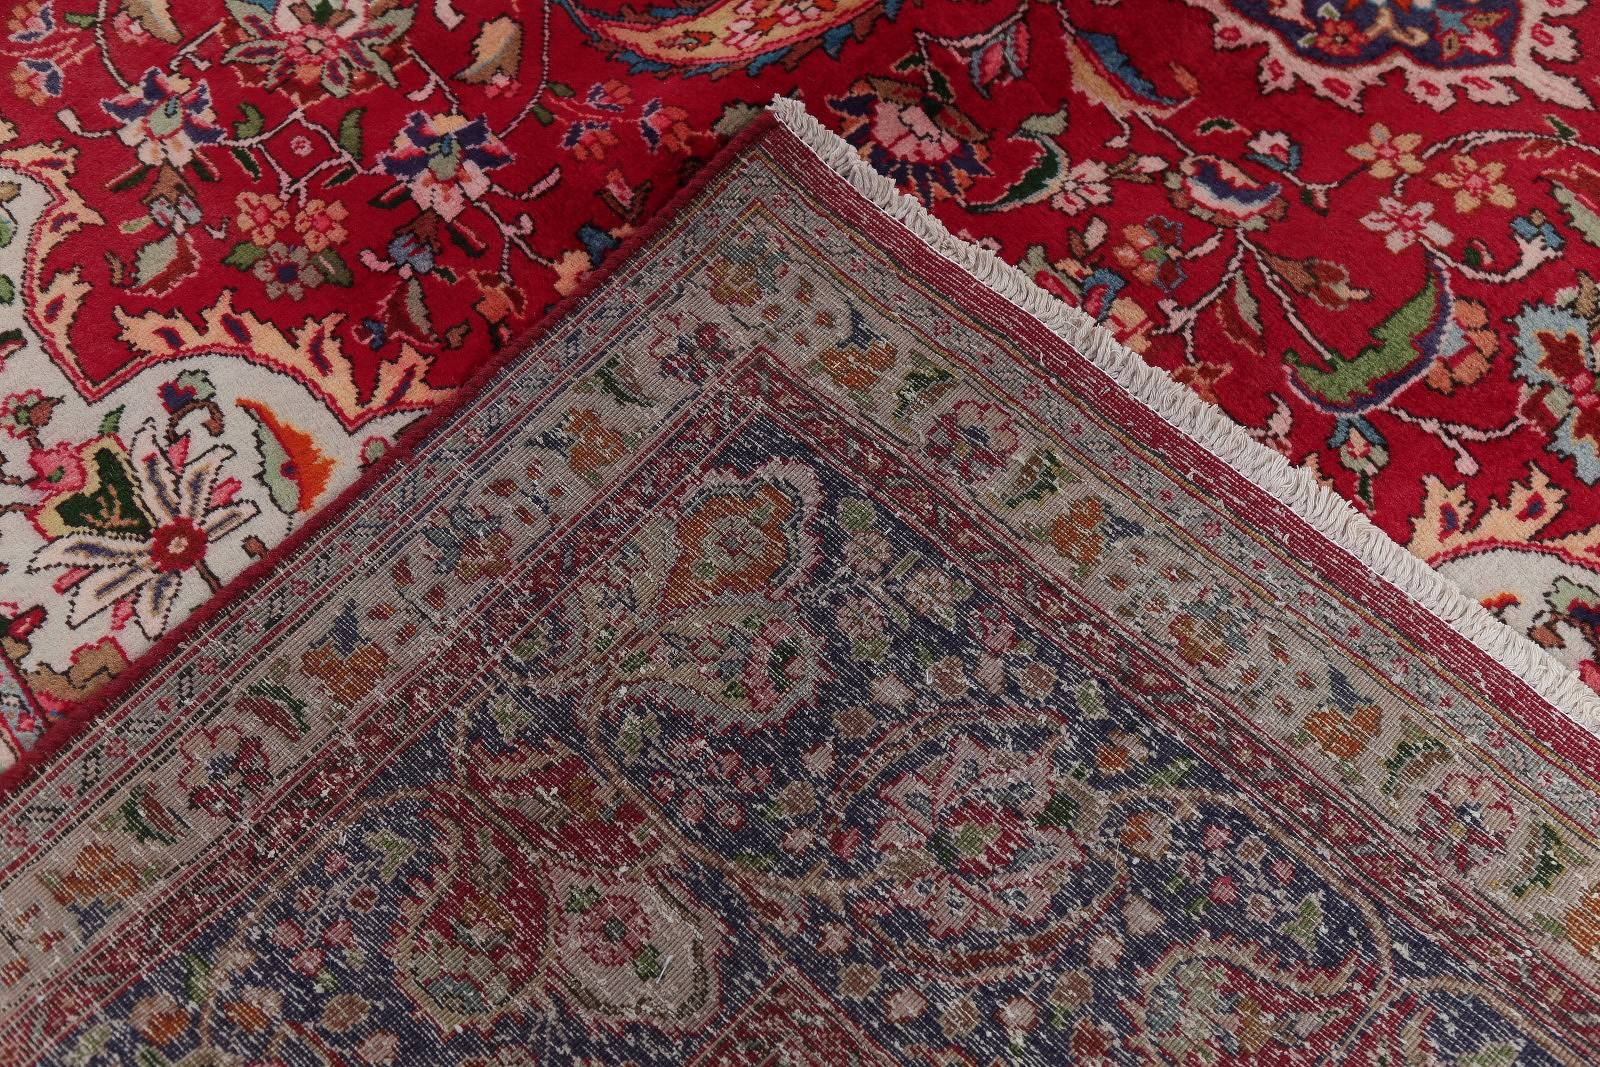 Vintage Red Tabriz Persian Hand-Knotted 9x13 Wool Area Rug